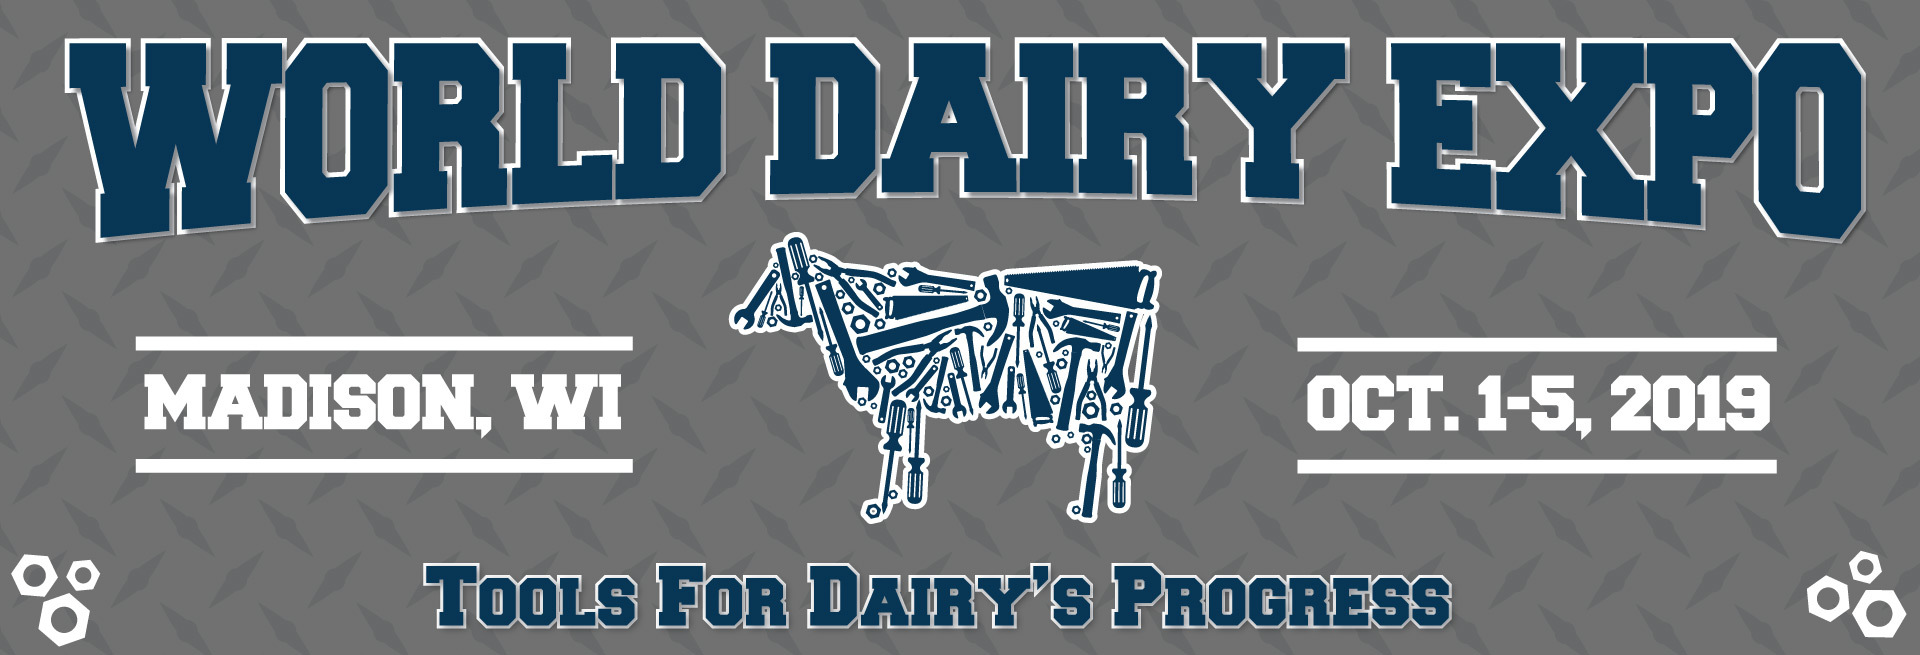 World Dairy 2019